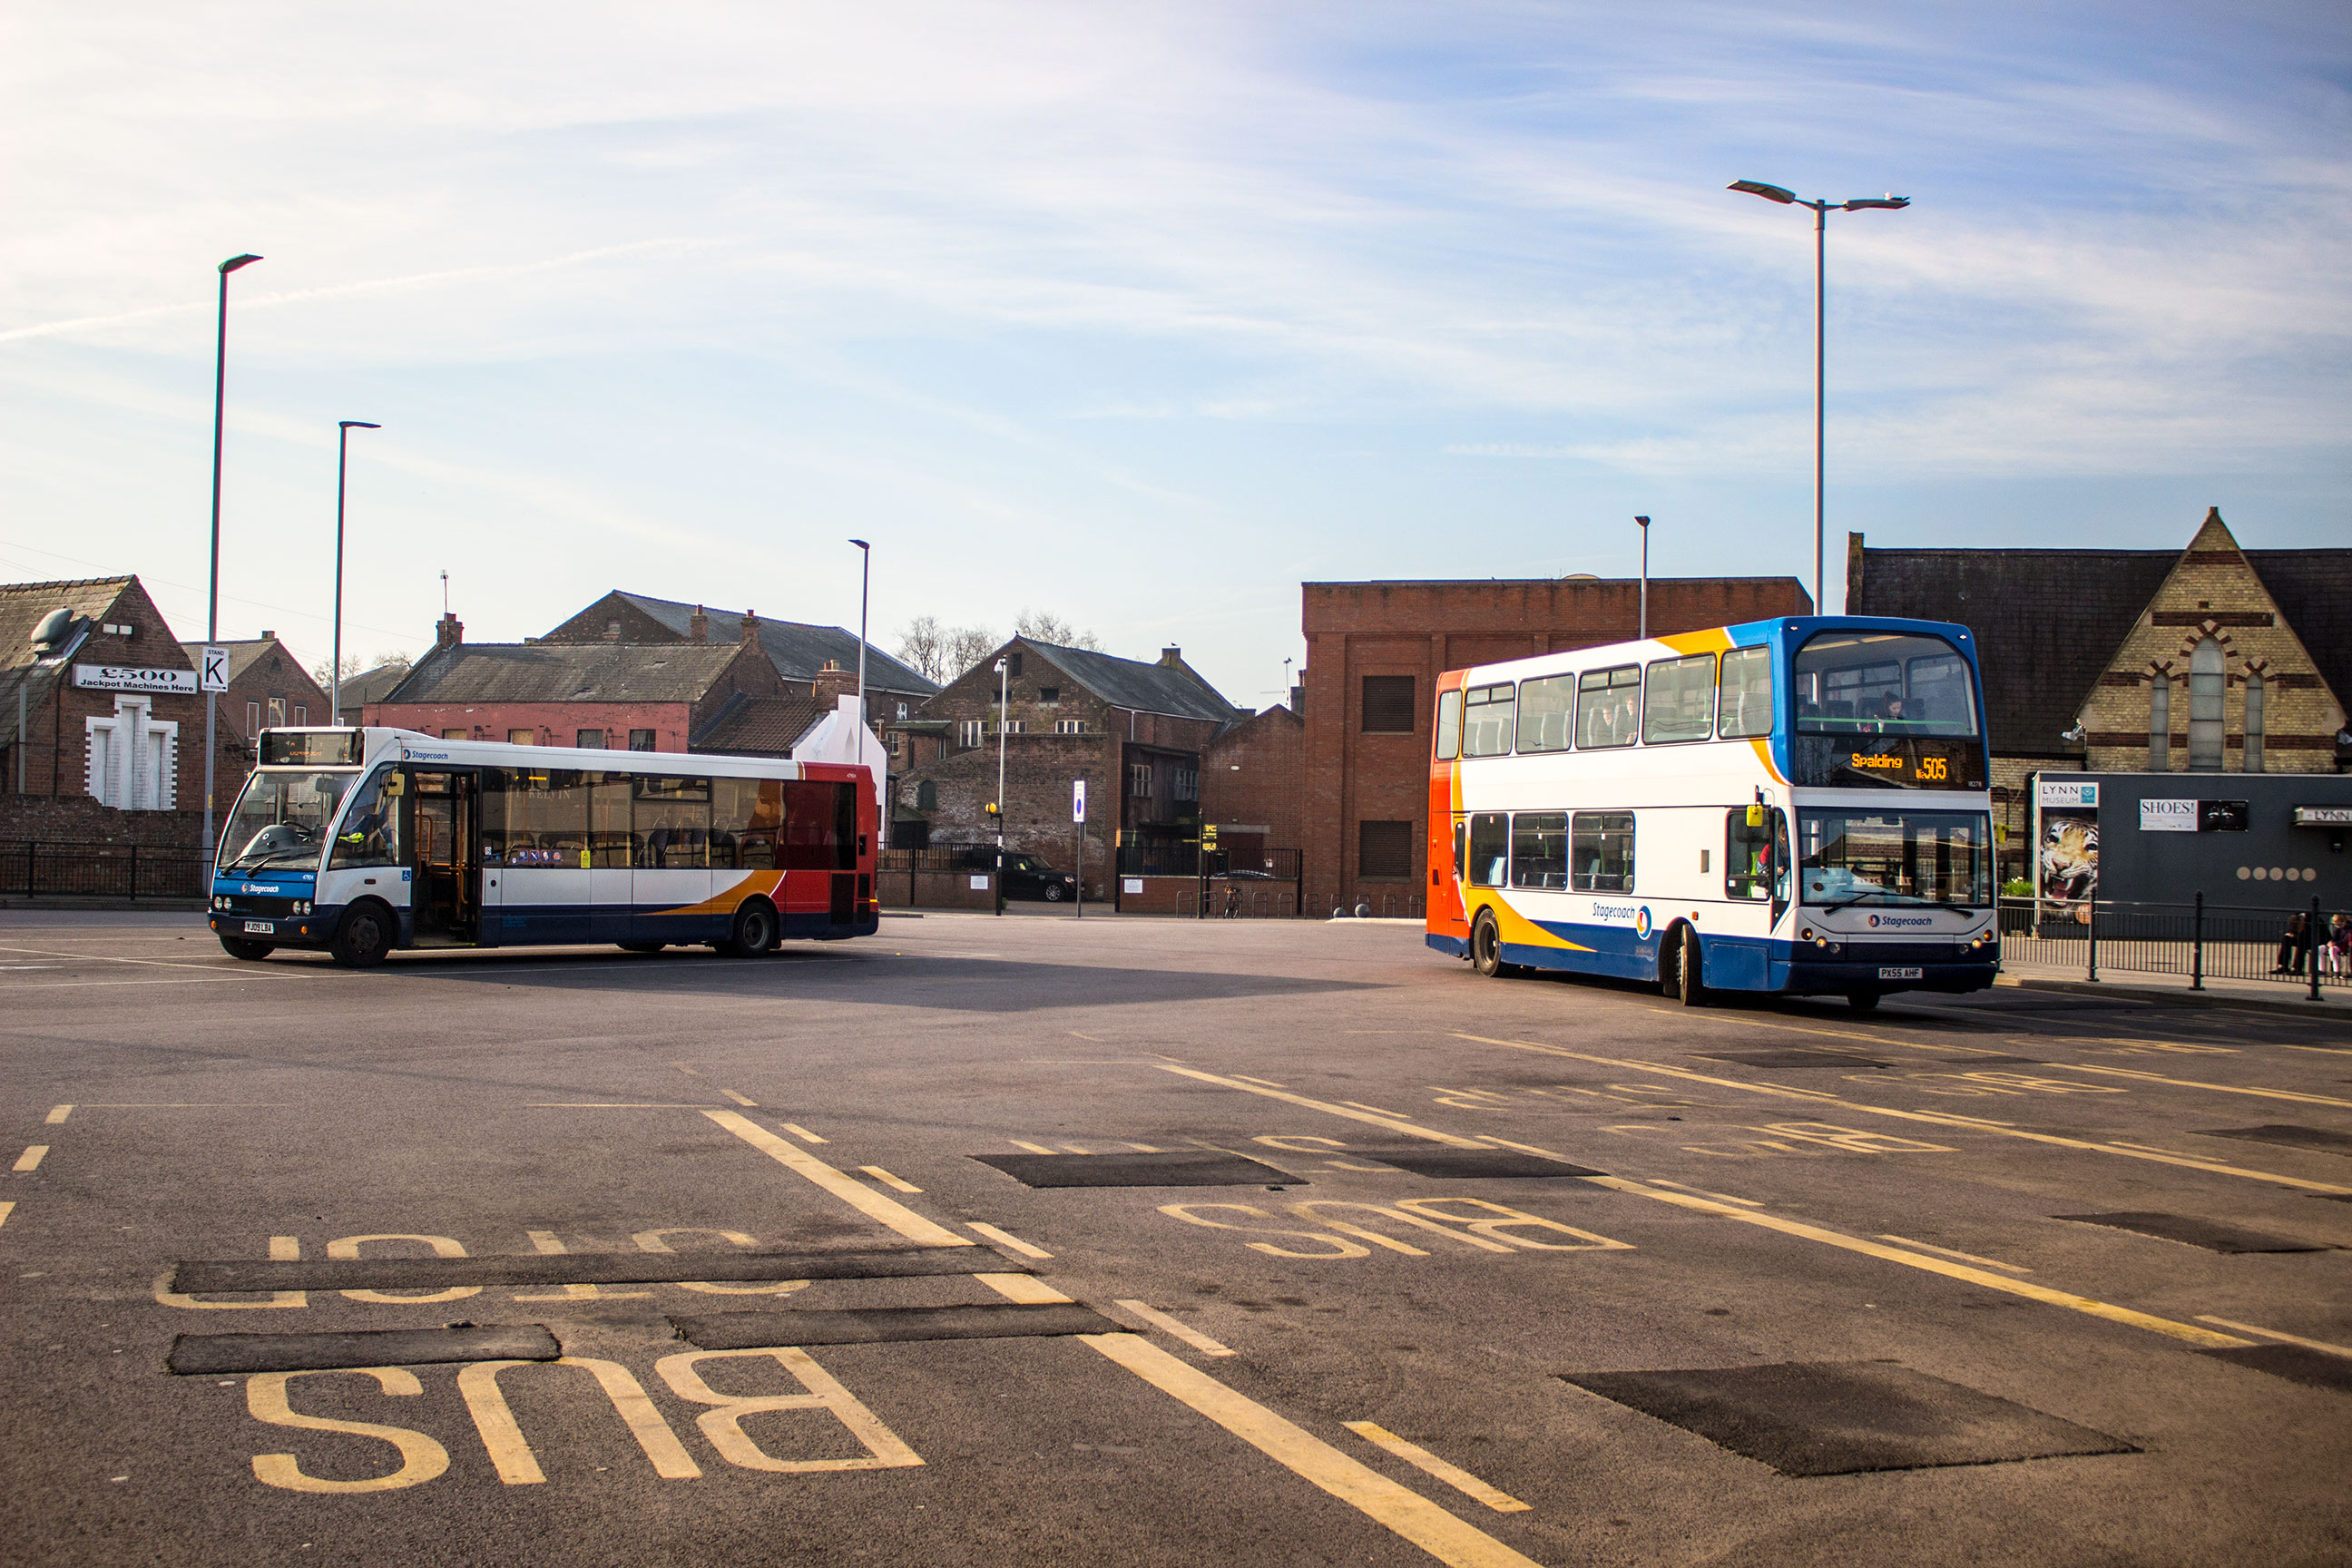 Multiple Stagecoach buses in King's Lynn's bus station